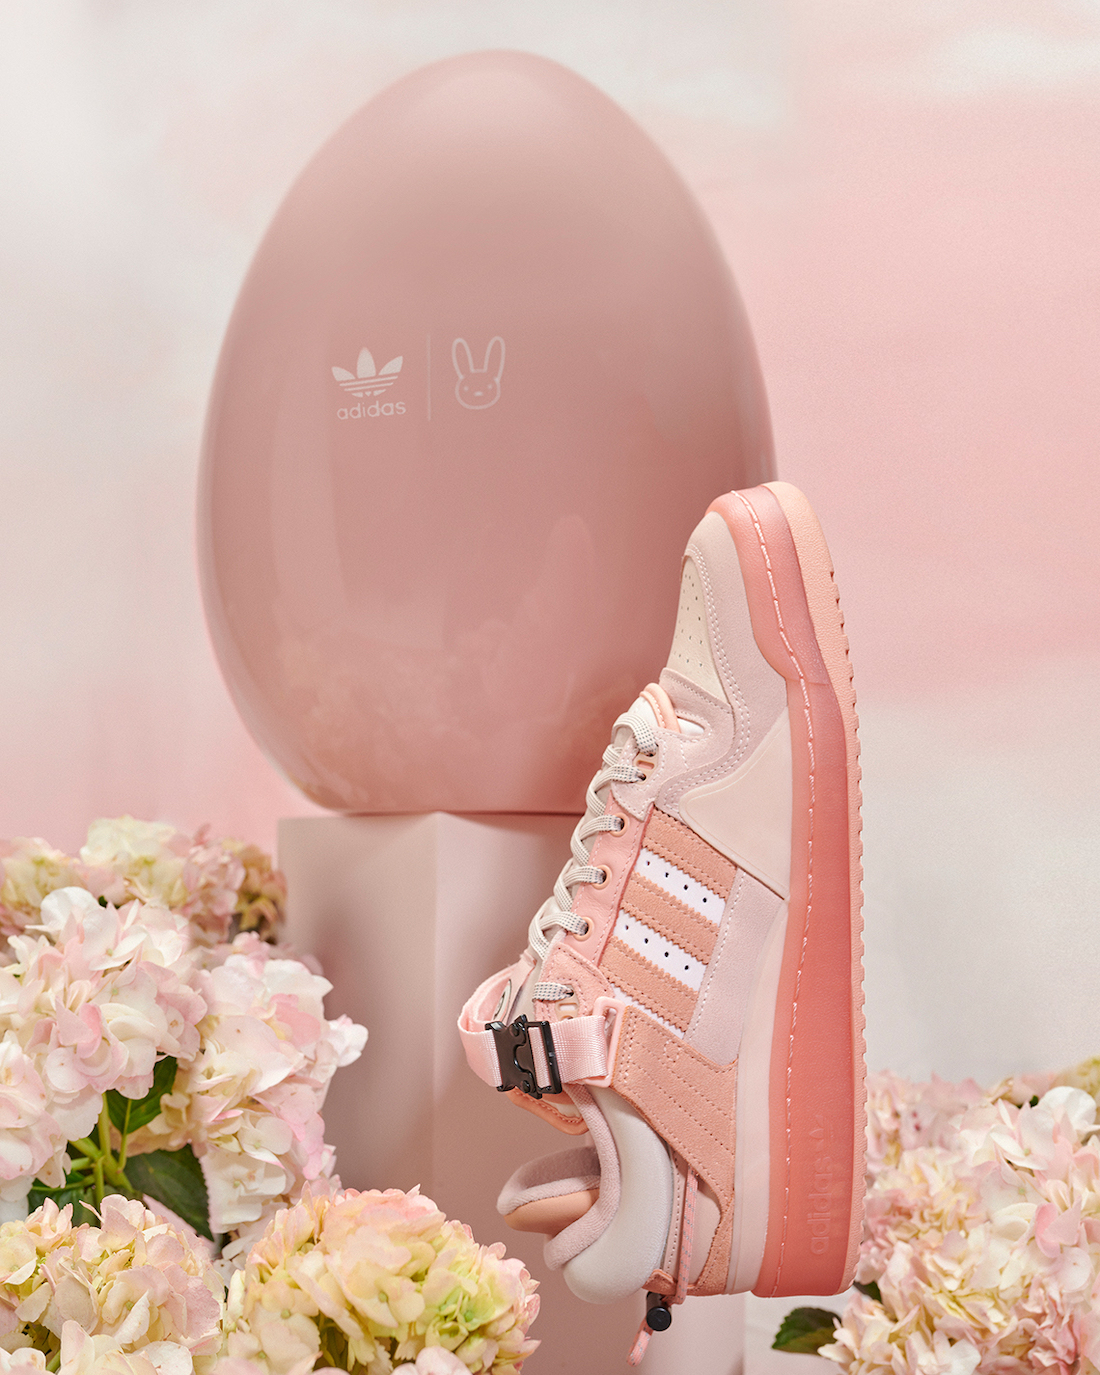 Bad-Bunny-adidas-Forum-Buckle-Low-Easter-Egg-GW0265-Release-Date-3